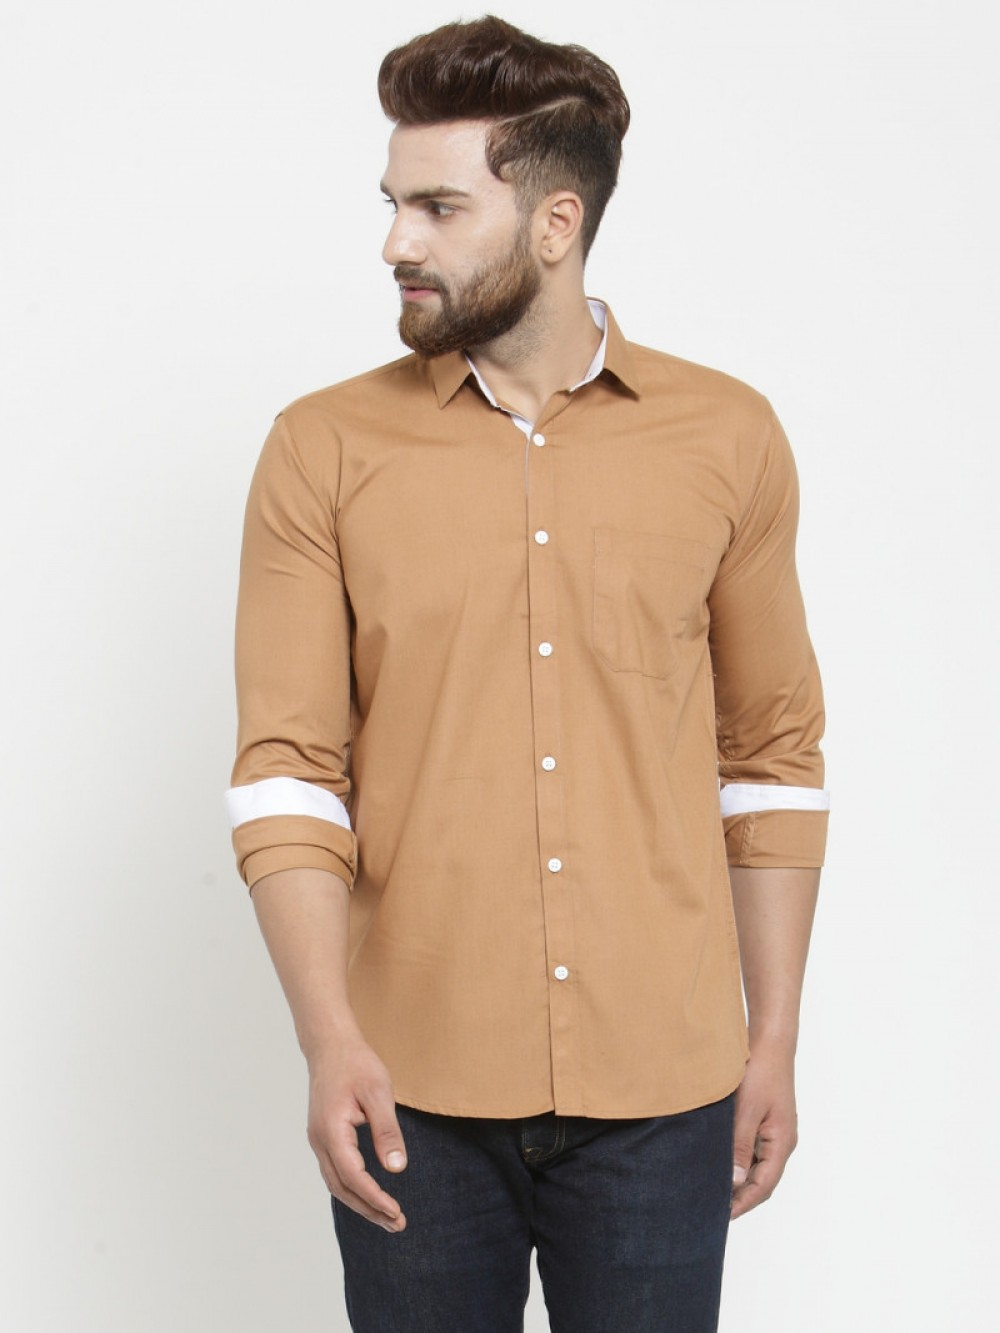 Premium Cotton Formal Office Wear Shirt